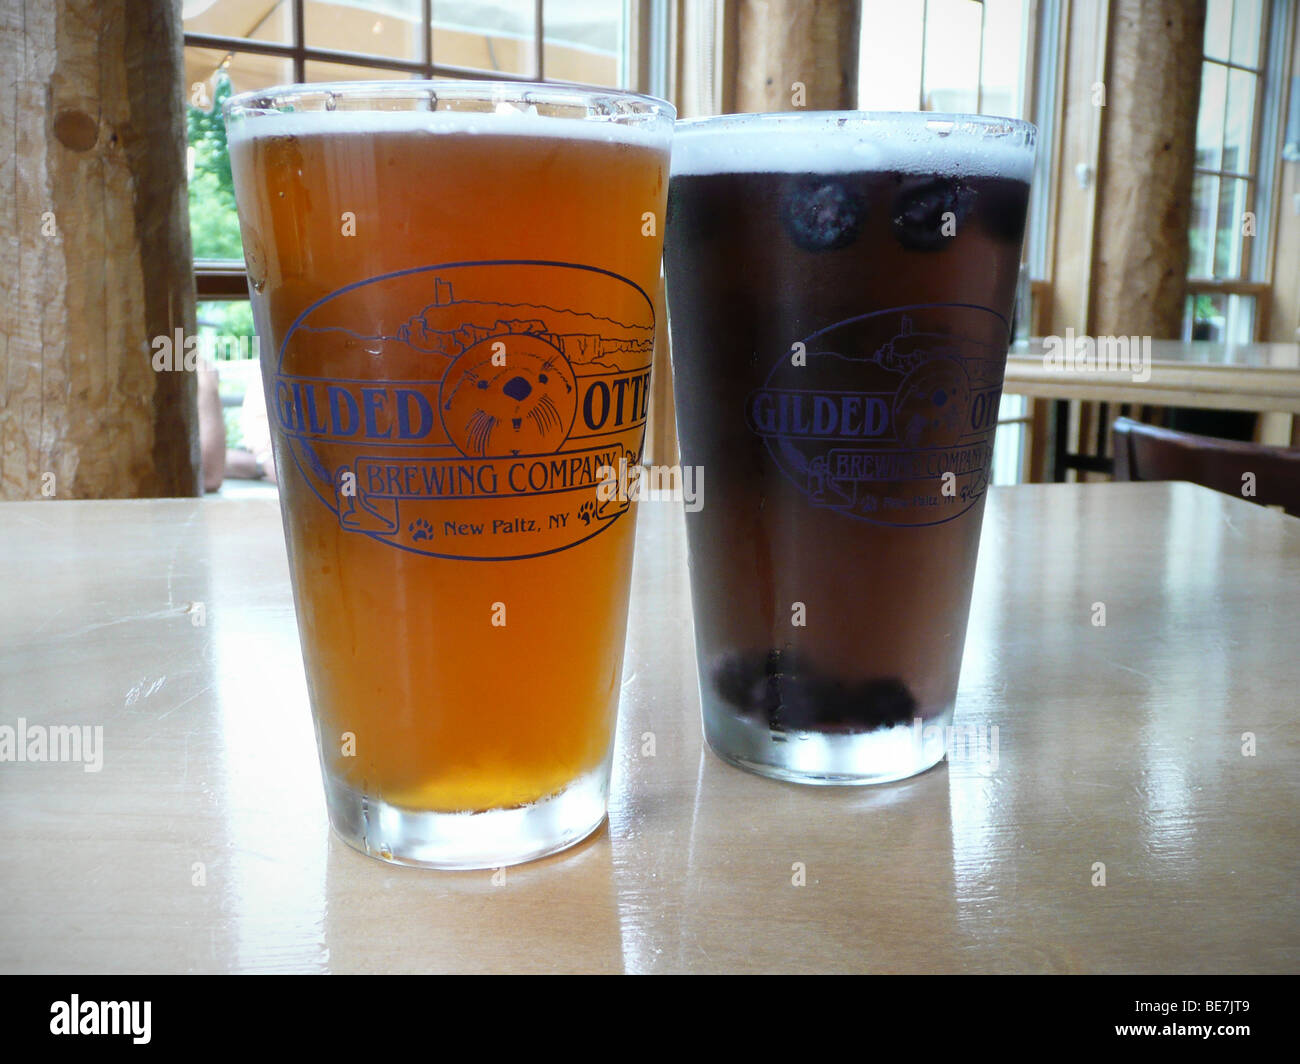 IPA and summer porch lager, Gilded Otter Brewery, New Paltz, NY - Stock Image